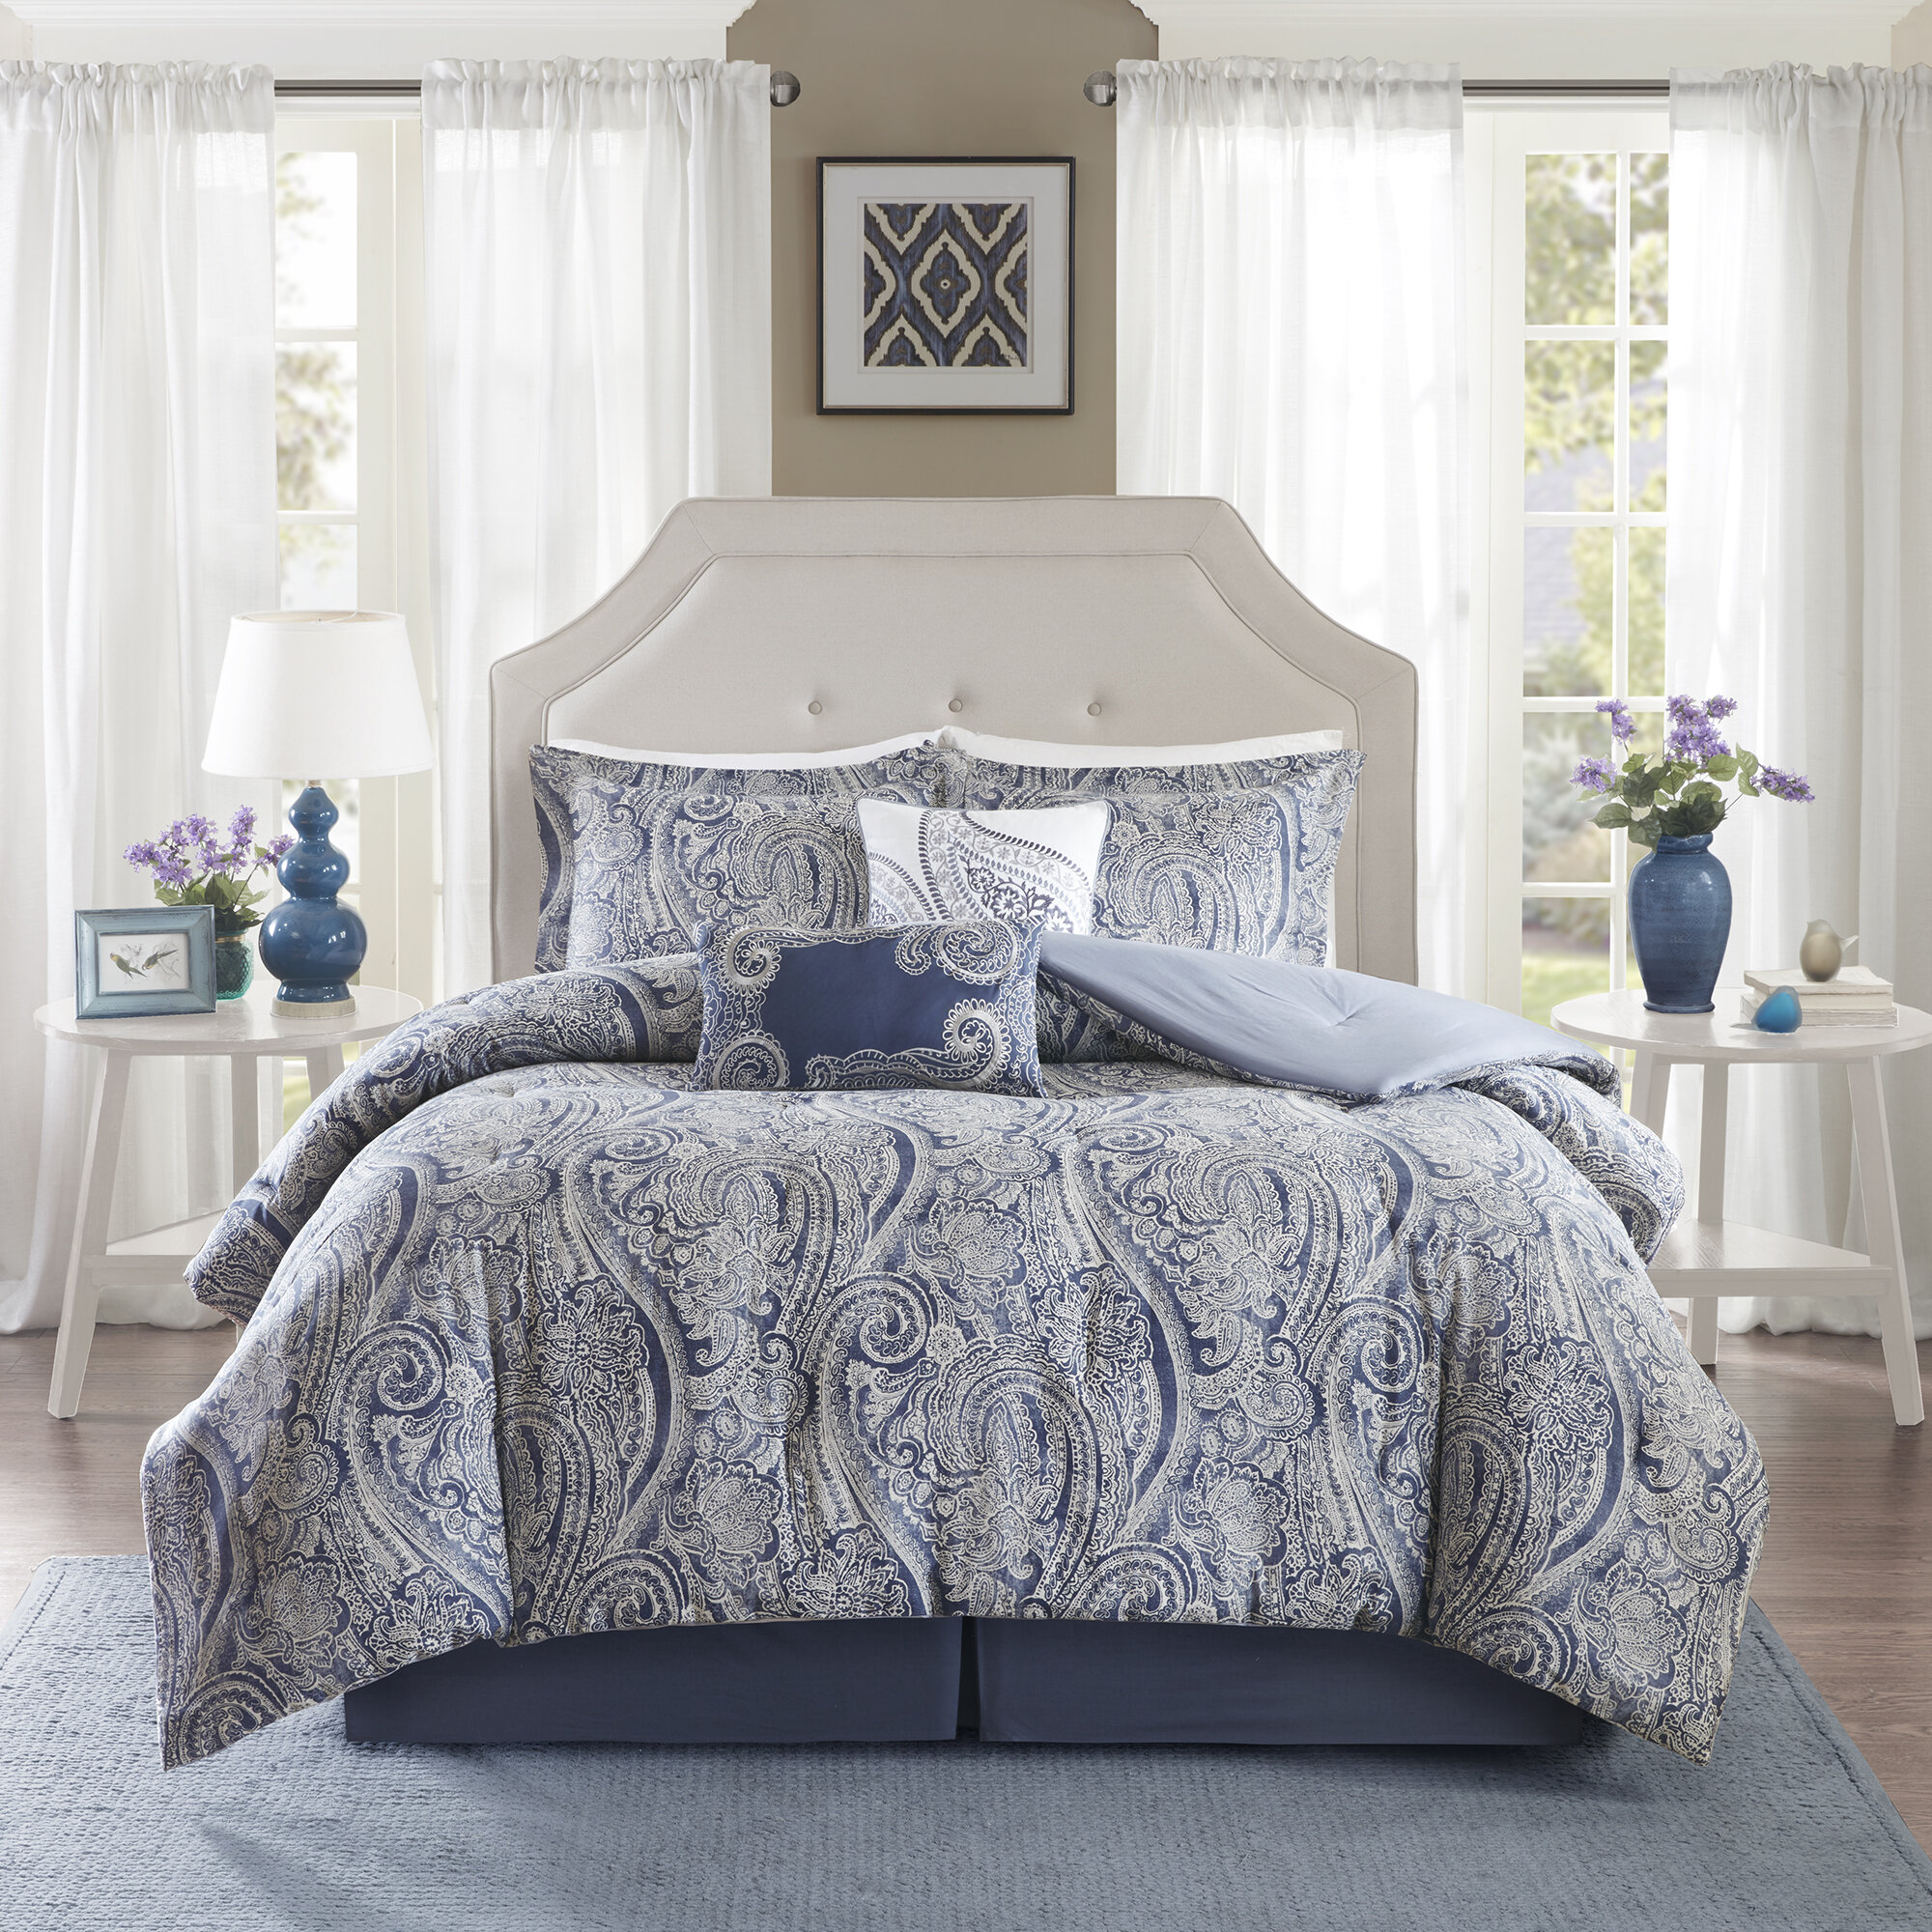 glomorous class large tides coastal oversized king bedspread plus bedding cover lightweight new for peculiar at covers smart duvet touch sets extra single interesting brand size set bedspreads comforter ocean silver